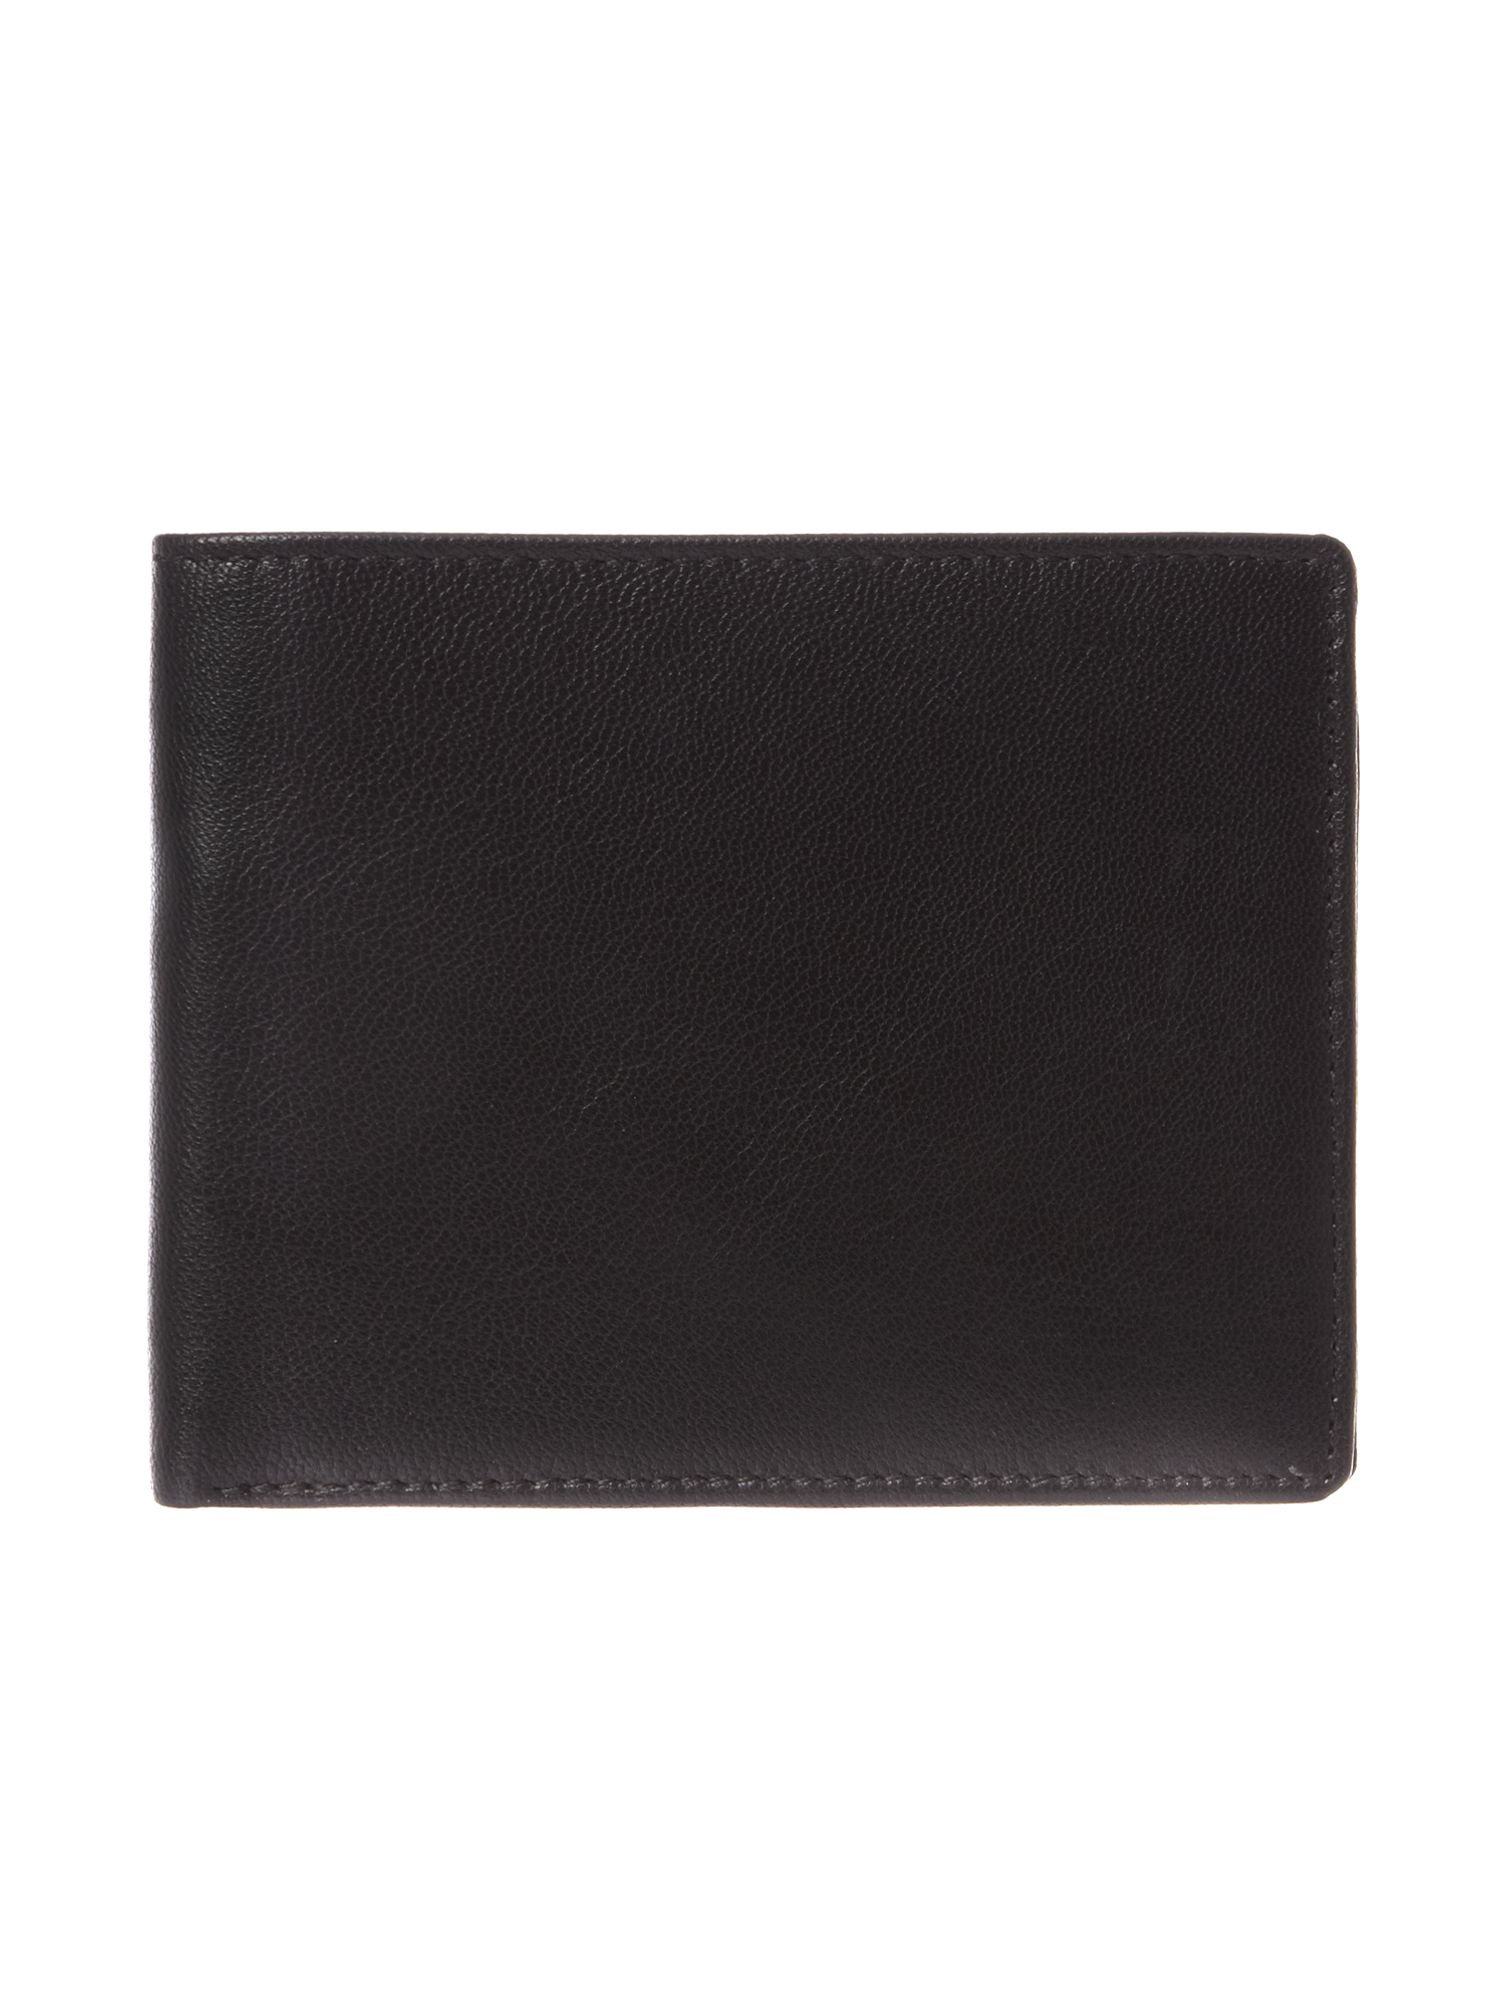 Linea smart billfold wallet